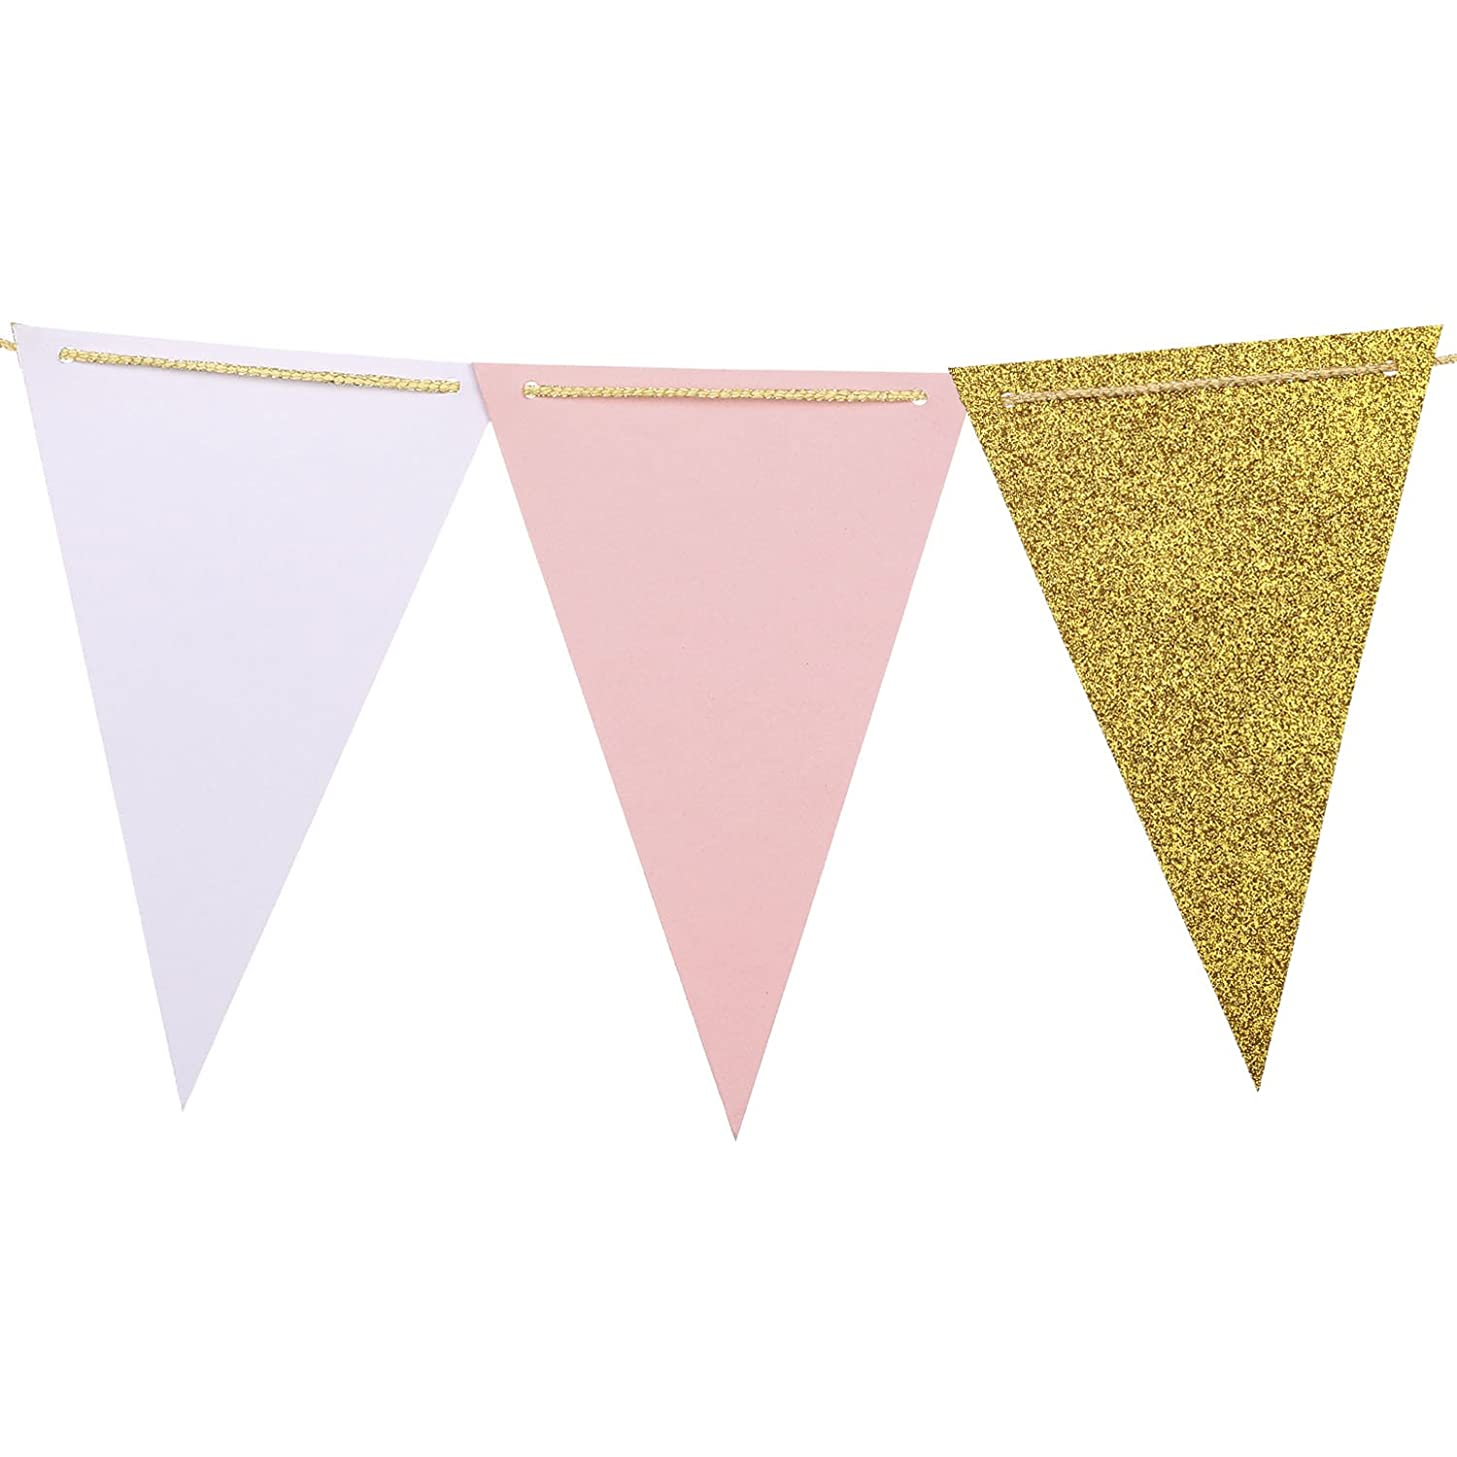 Ling's moment Paper Pennant Banner Triangle Flags Garland for Wedding, Baby Shower, Cake Smash, Photo Props, Event & Party Supplies, 15pcs Flags(Pink+Pearl White+Gold Glitter)